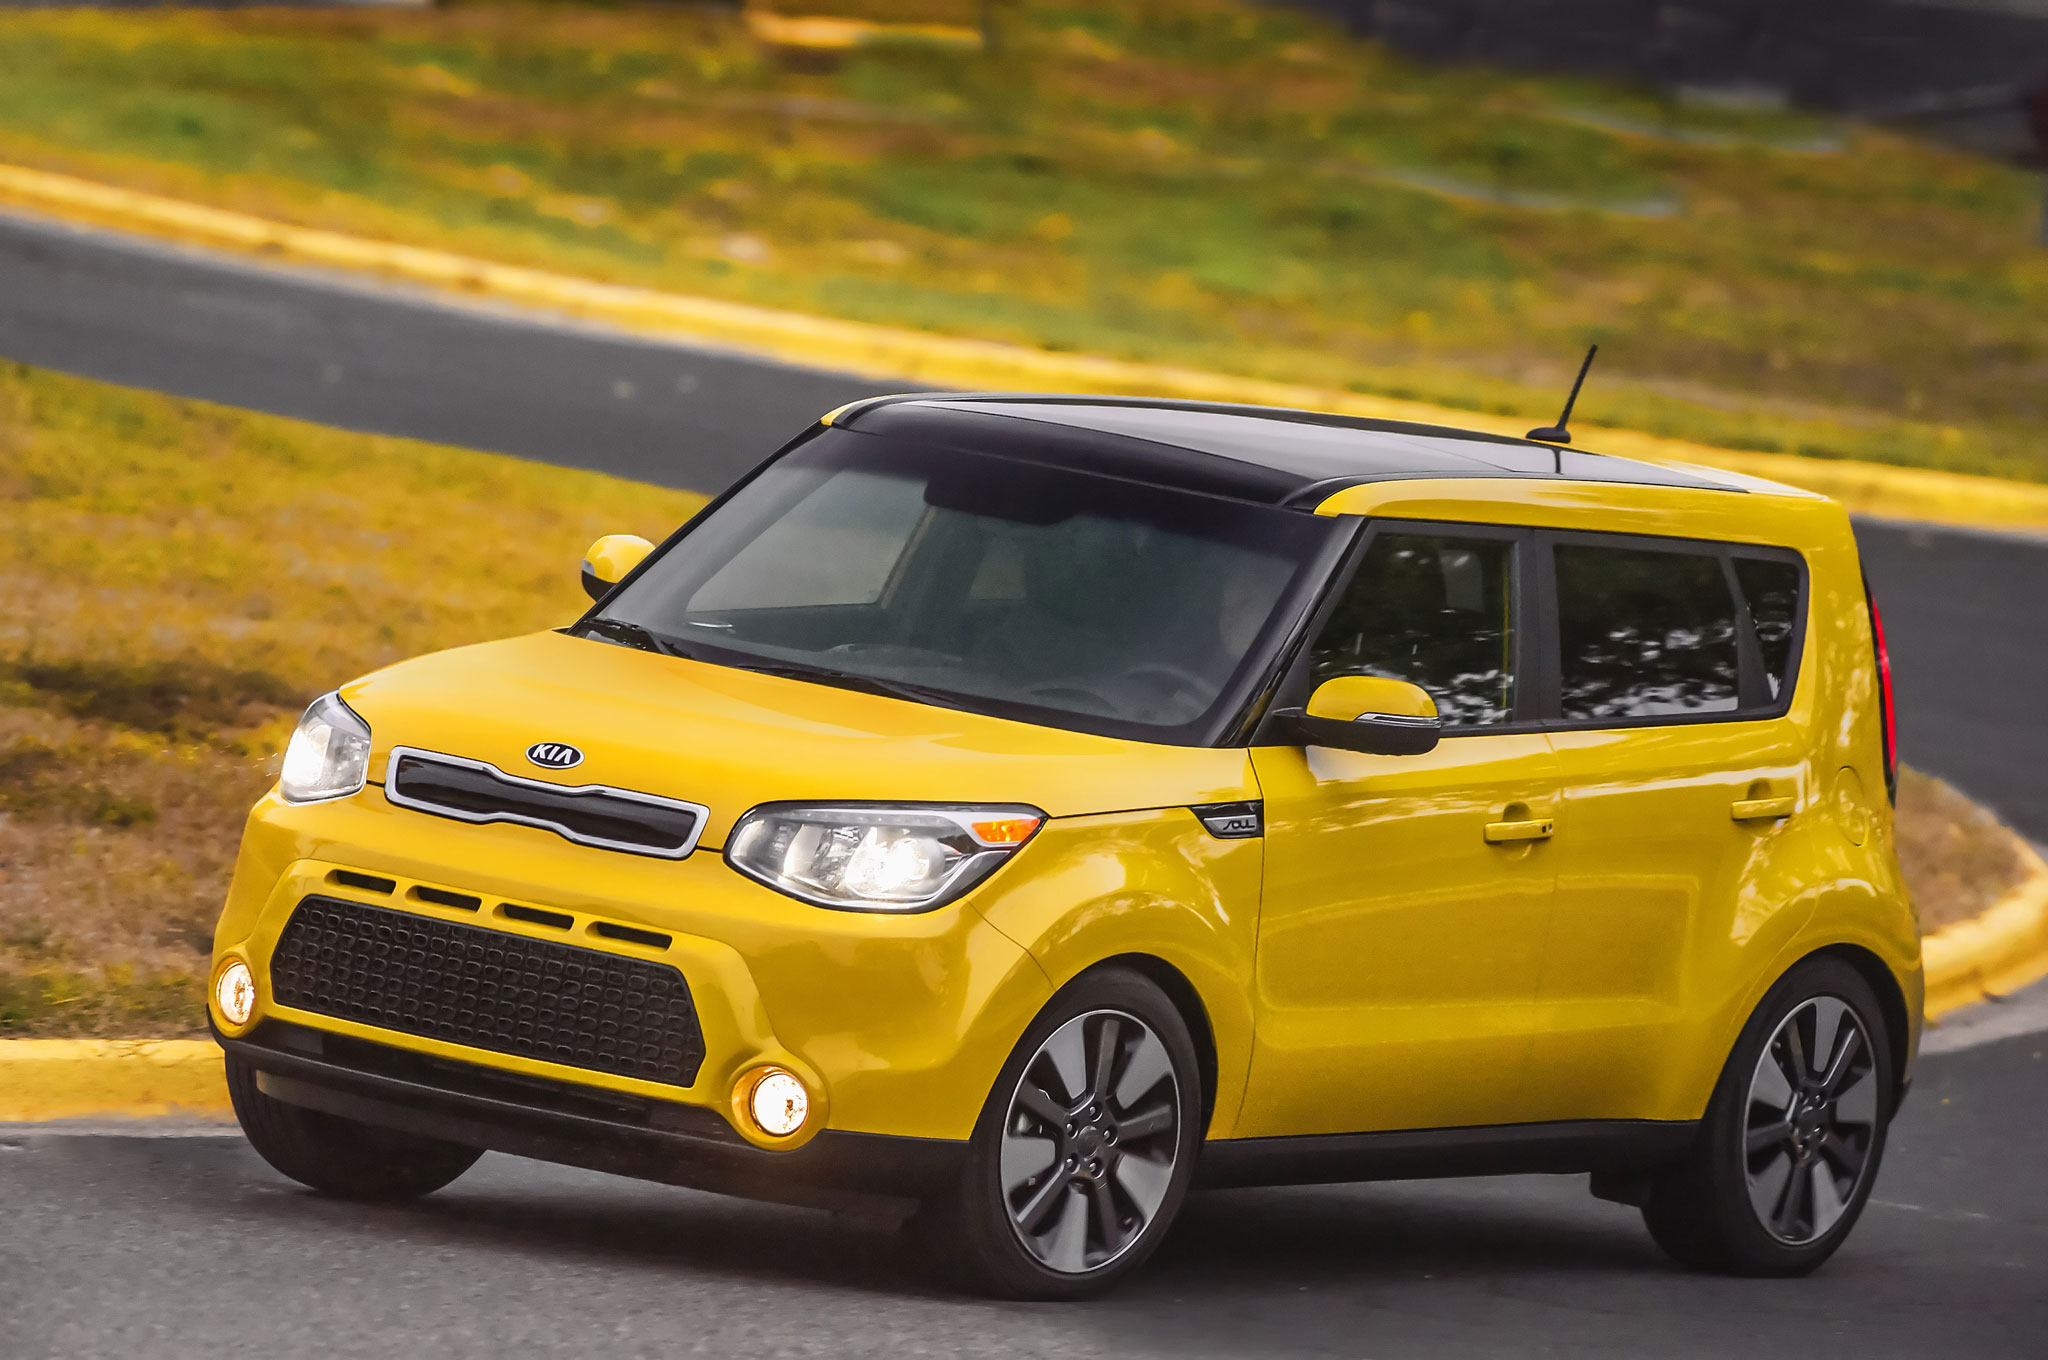 2016 Kia Soul Front Three Quarter In Motion Kia Country Of Charleston